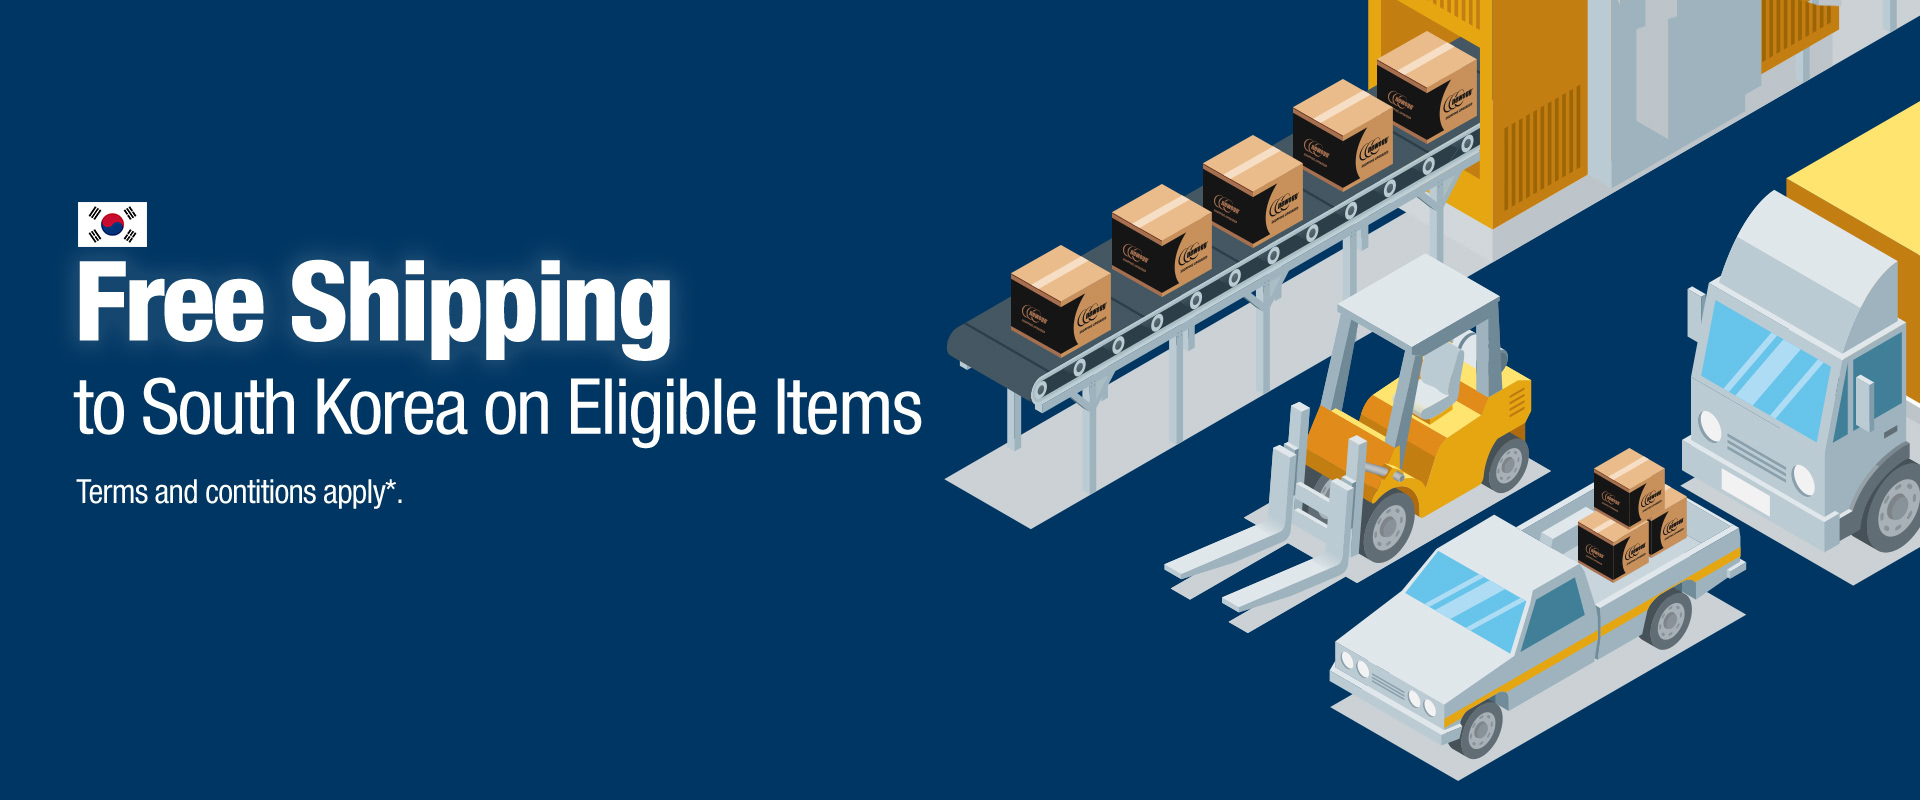 Enjoy Free Shipping in South Korea | Newegg com